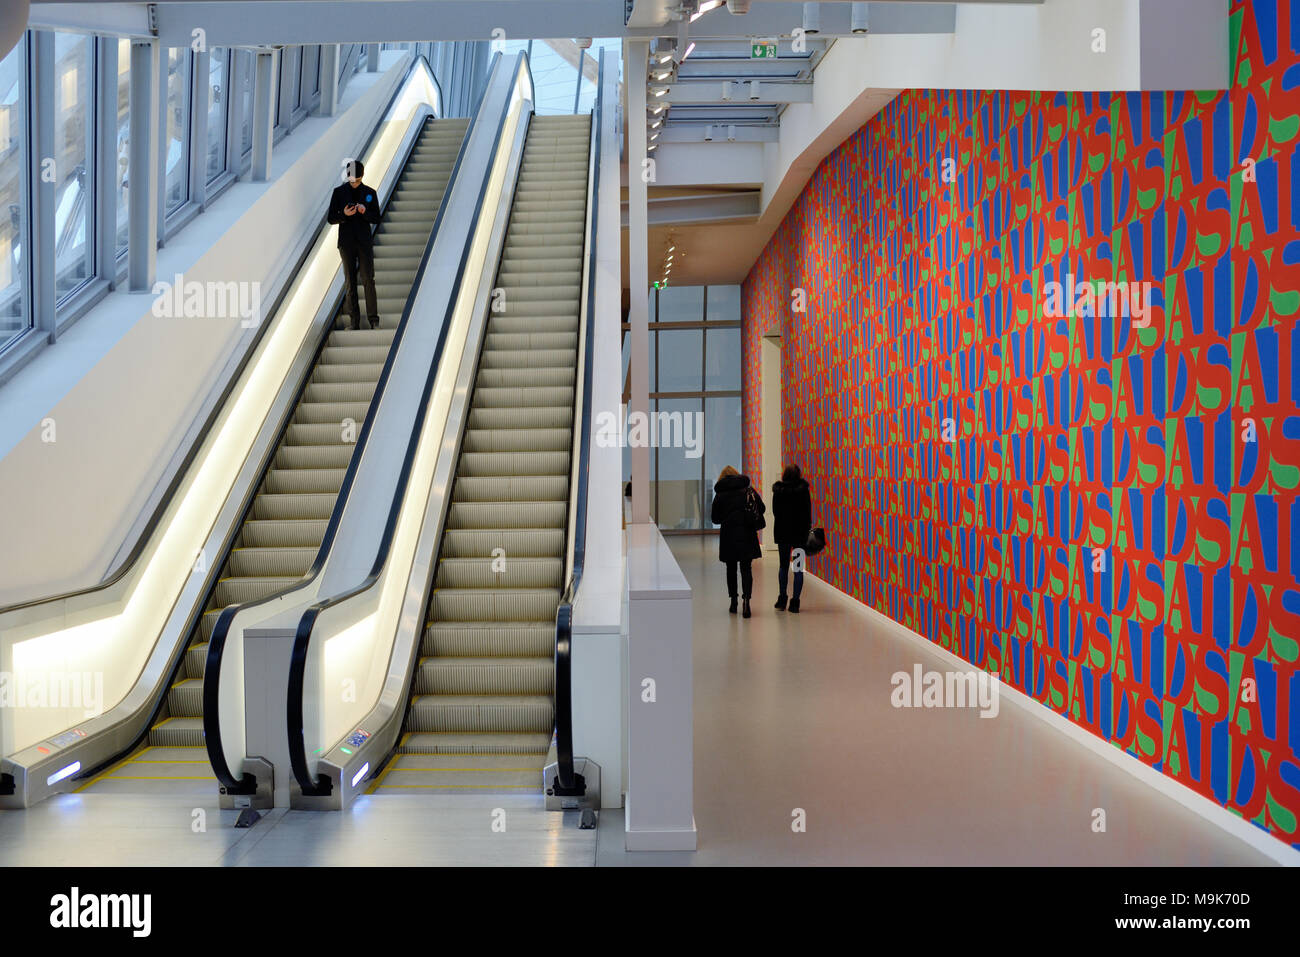 Visitors, Escalators & Aids Wallpaper in Hallway at the Louis Vuitton Foundation Art Museum & Cultural Centre (2006-14) designed by Frank Gehry, Paris - Stock Image